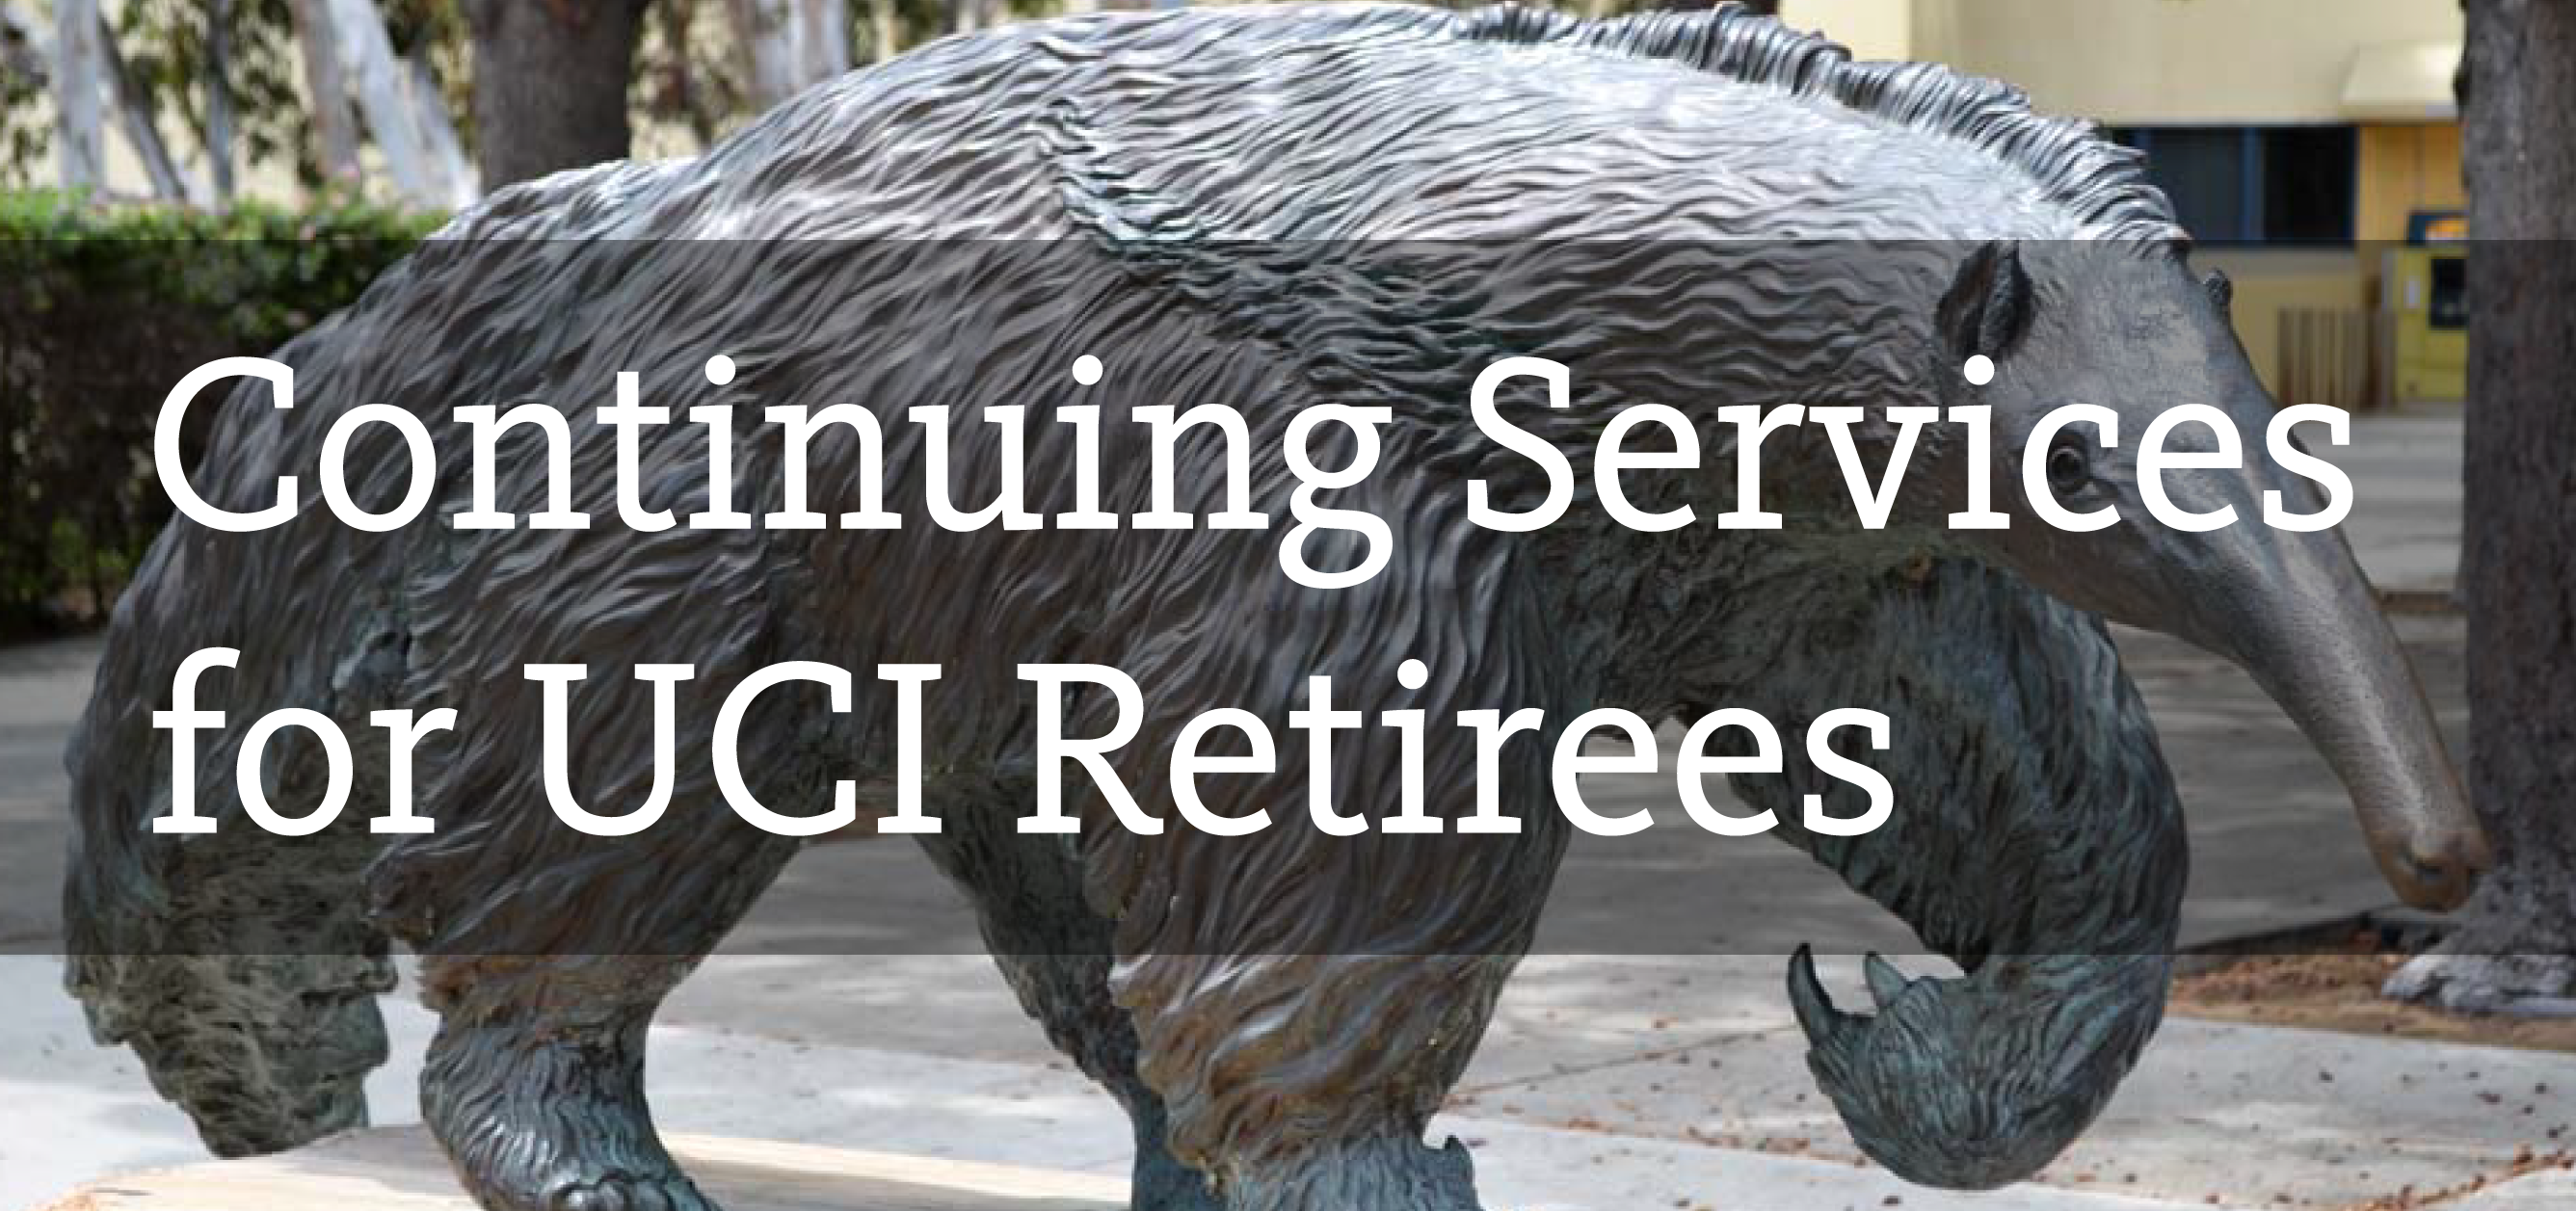 Continuing Services for UCI Retirees